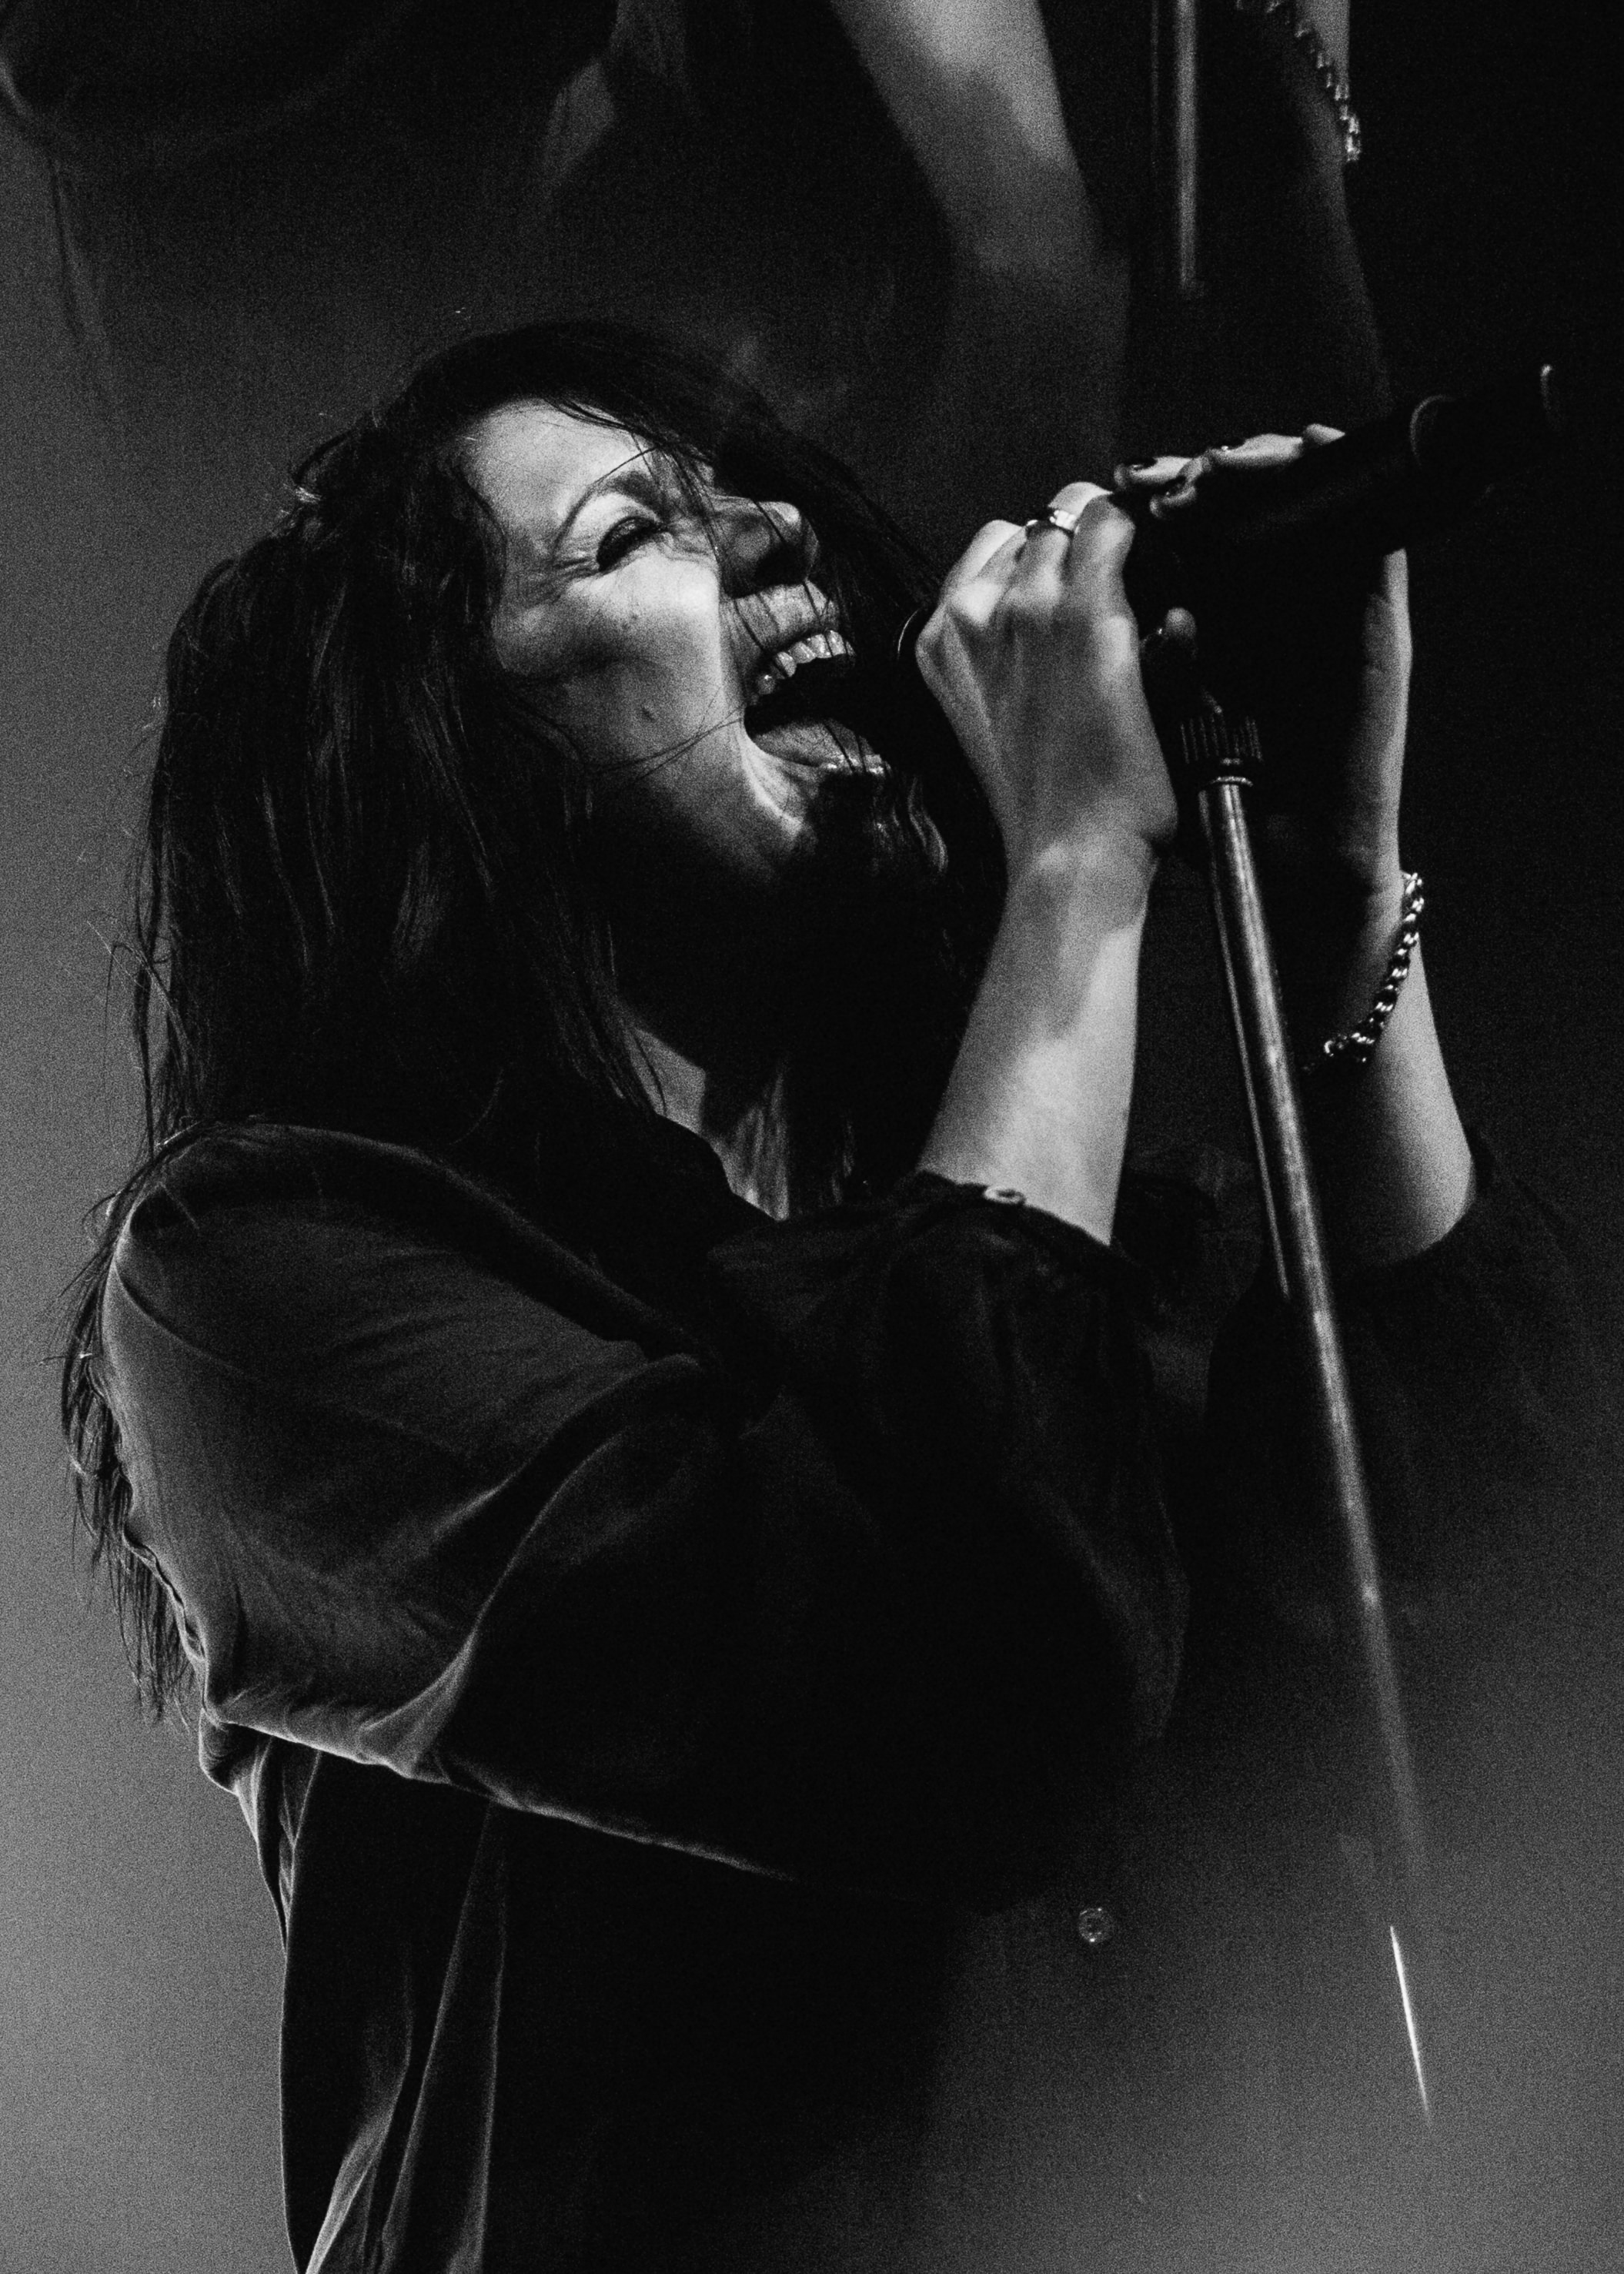 kirby-gladstein-photography-kflay-concert-fonda-theatre-los-angeles-2018-8